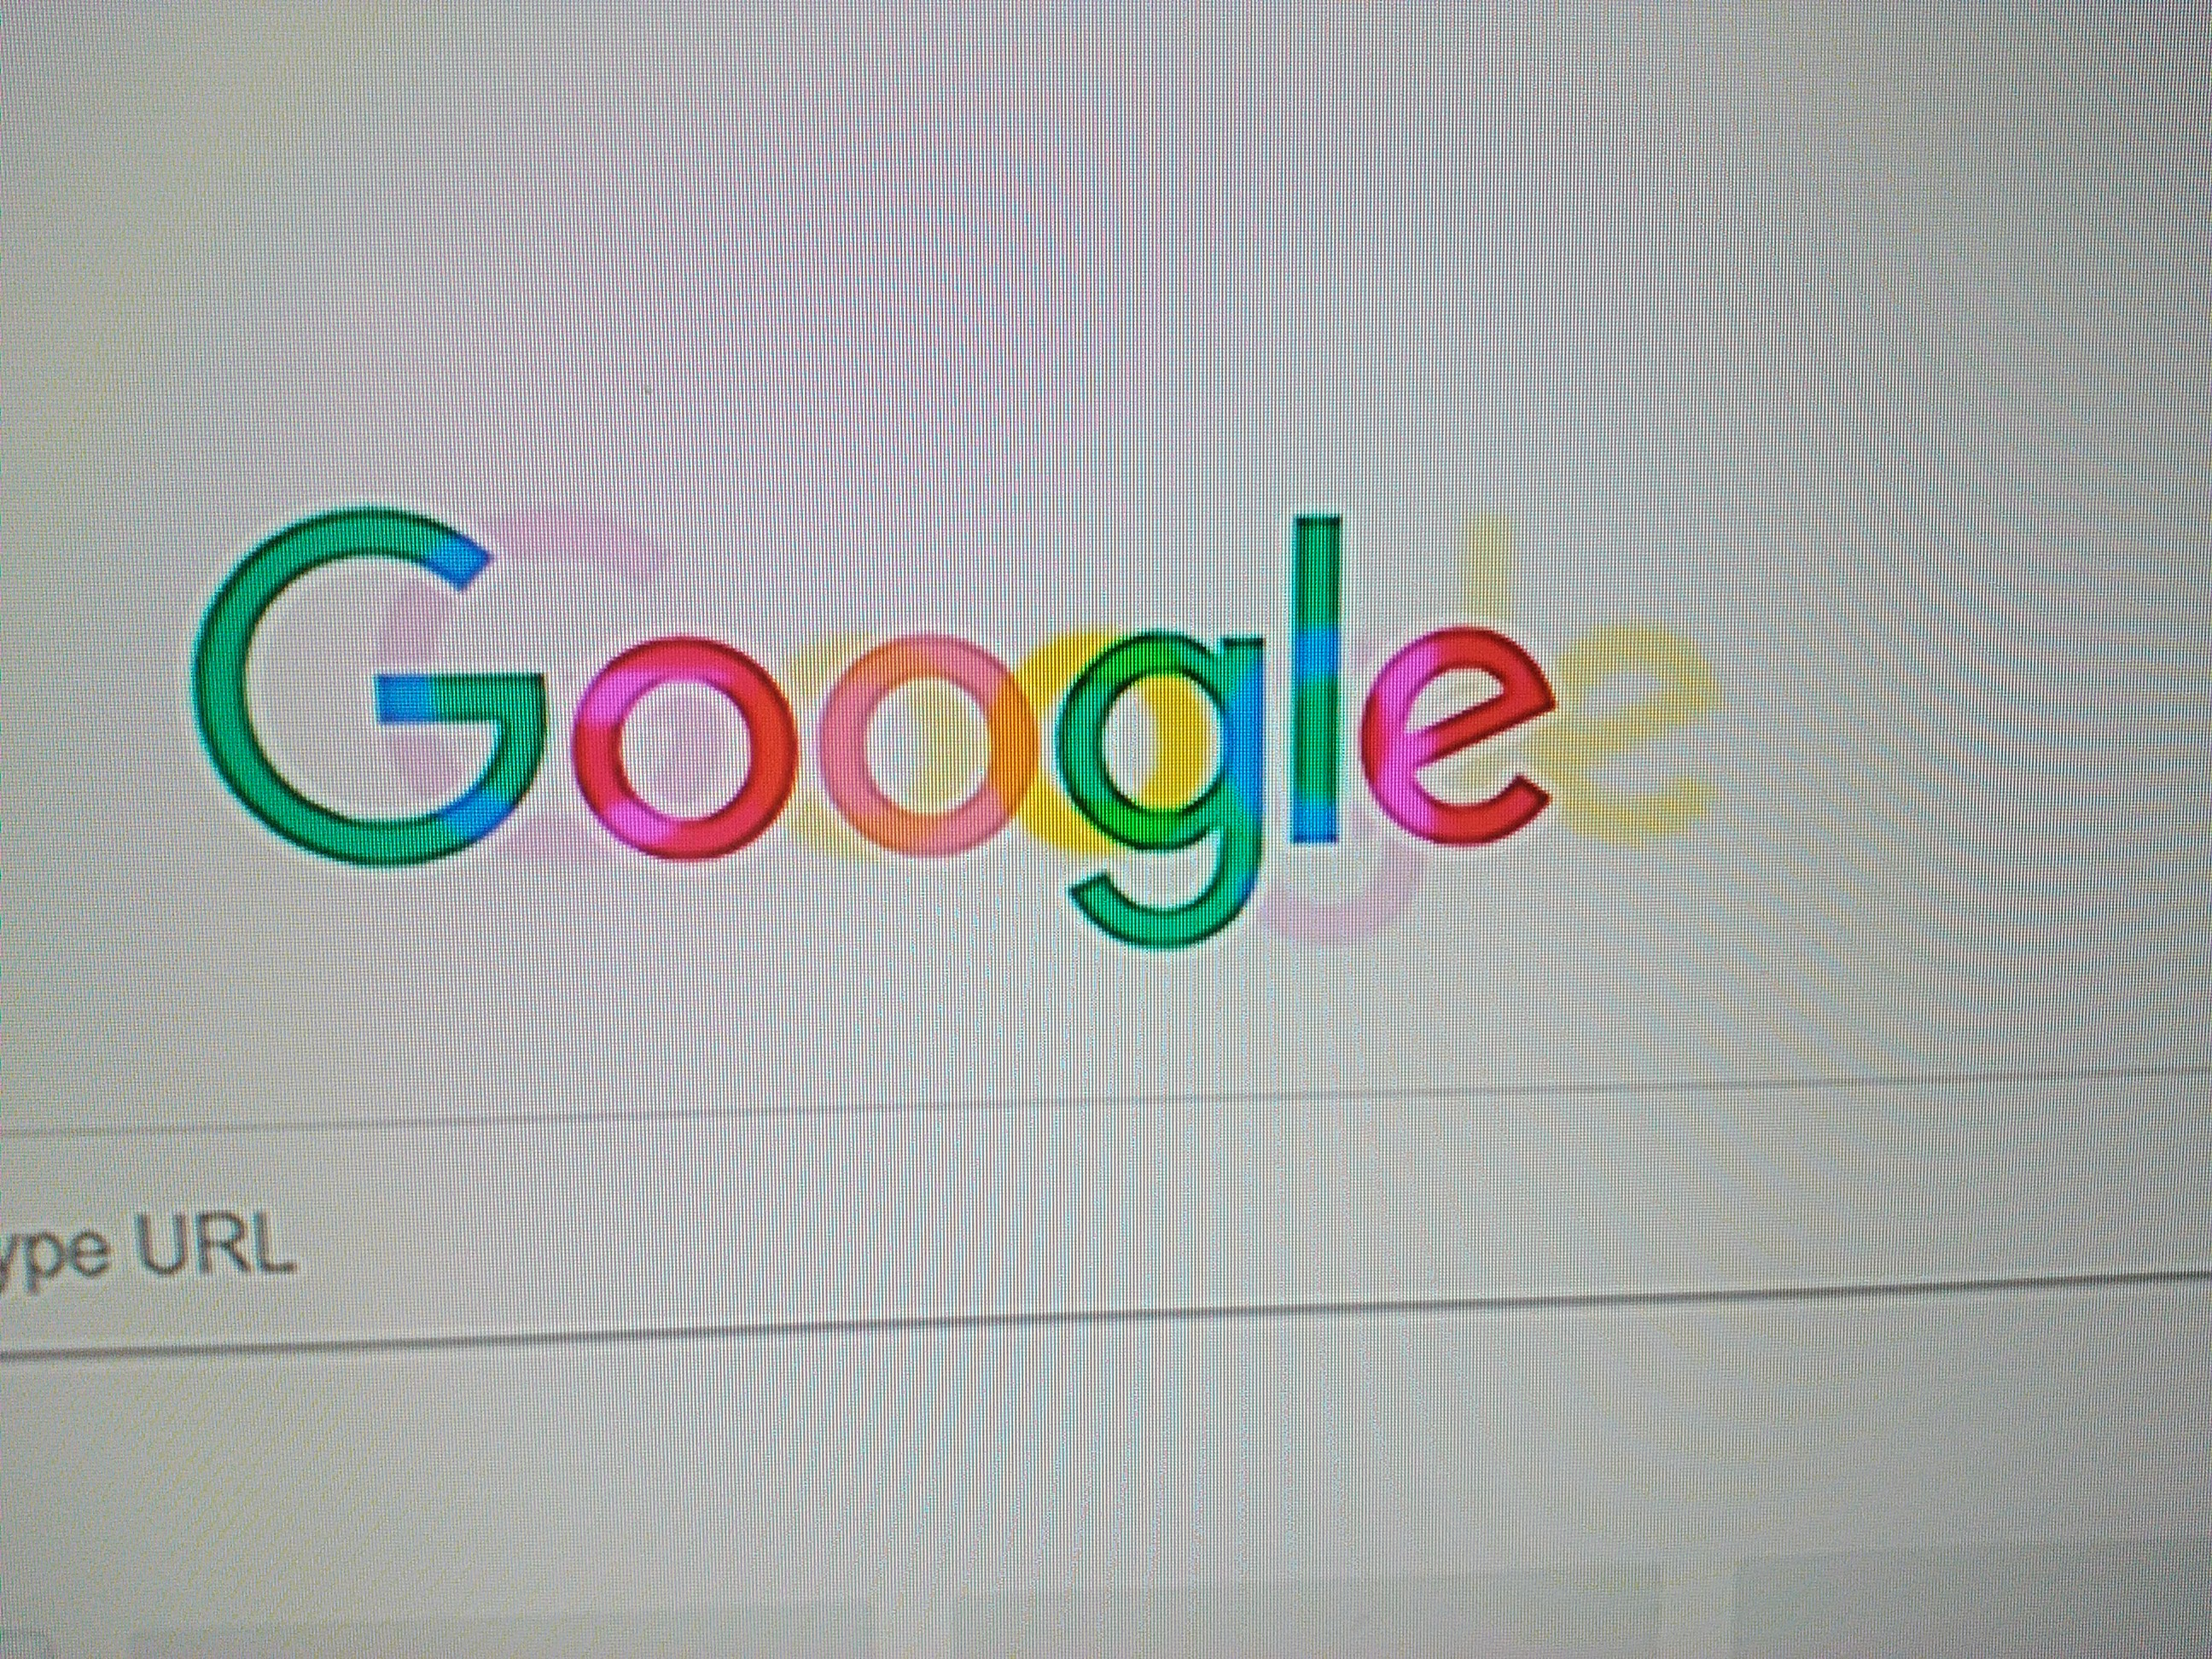 Colors shifted when casting from Chrome Tab (windows 10 laptop) to